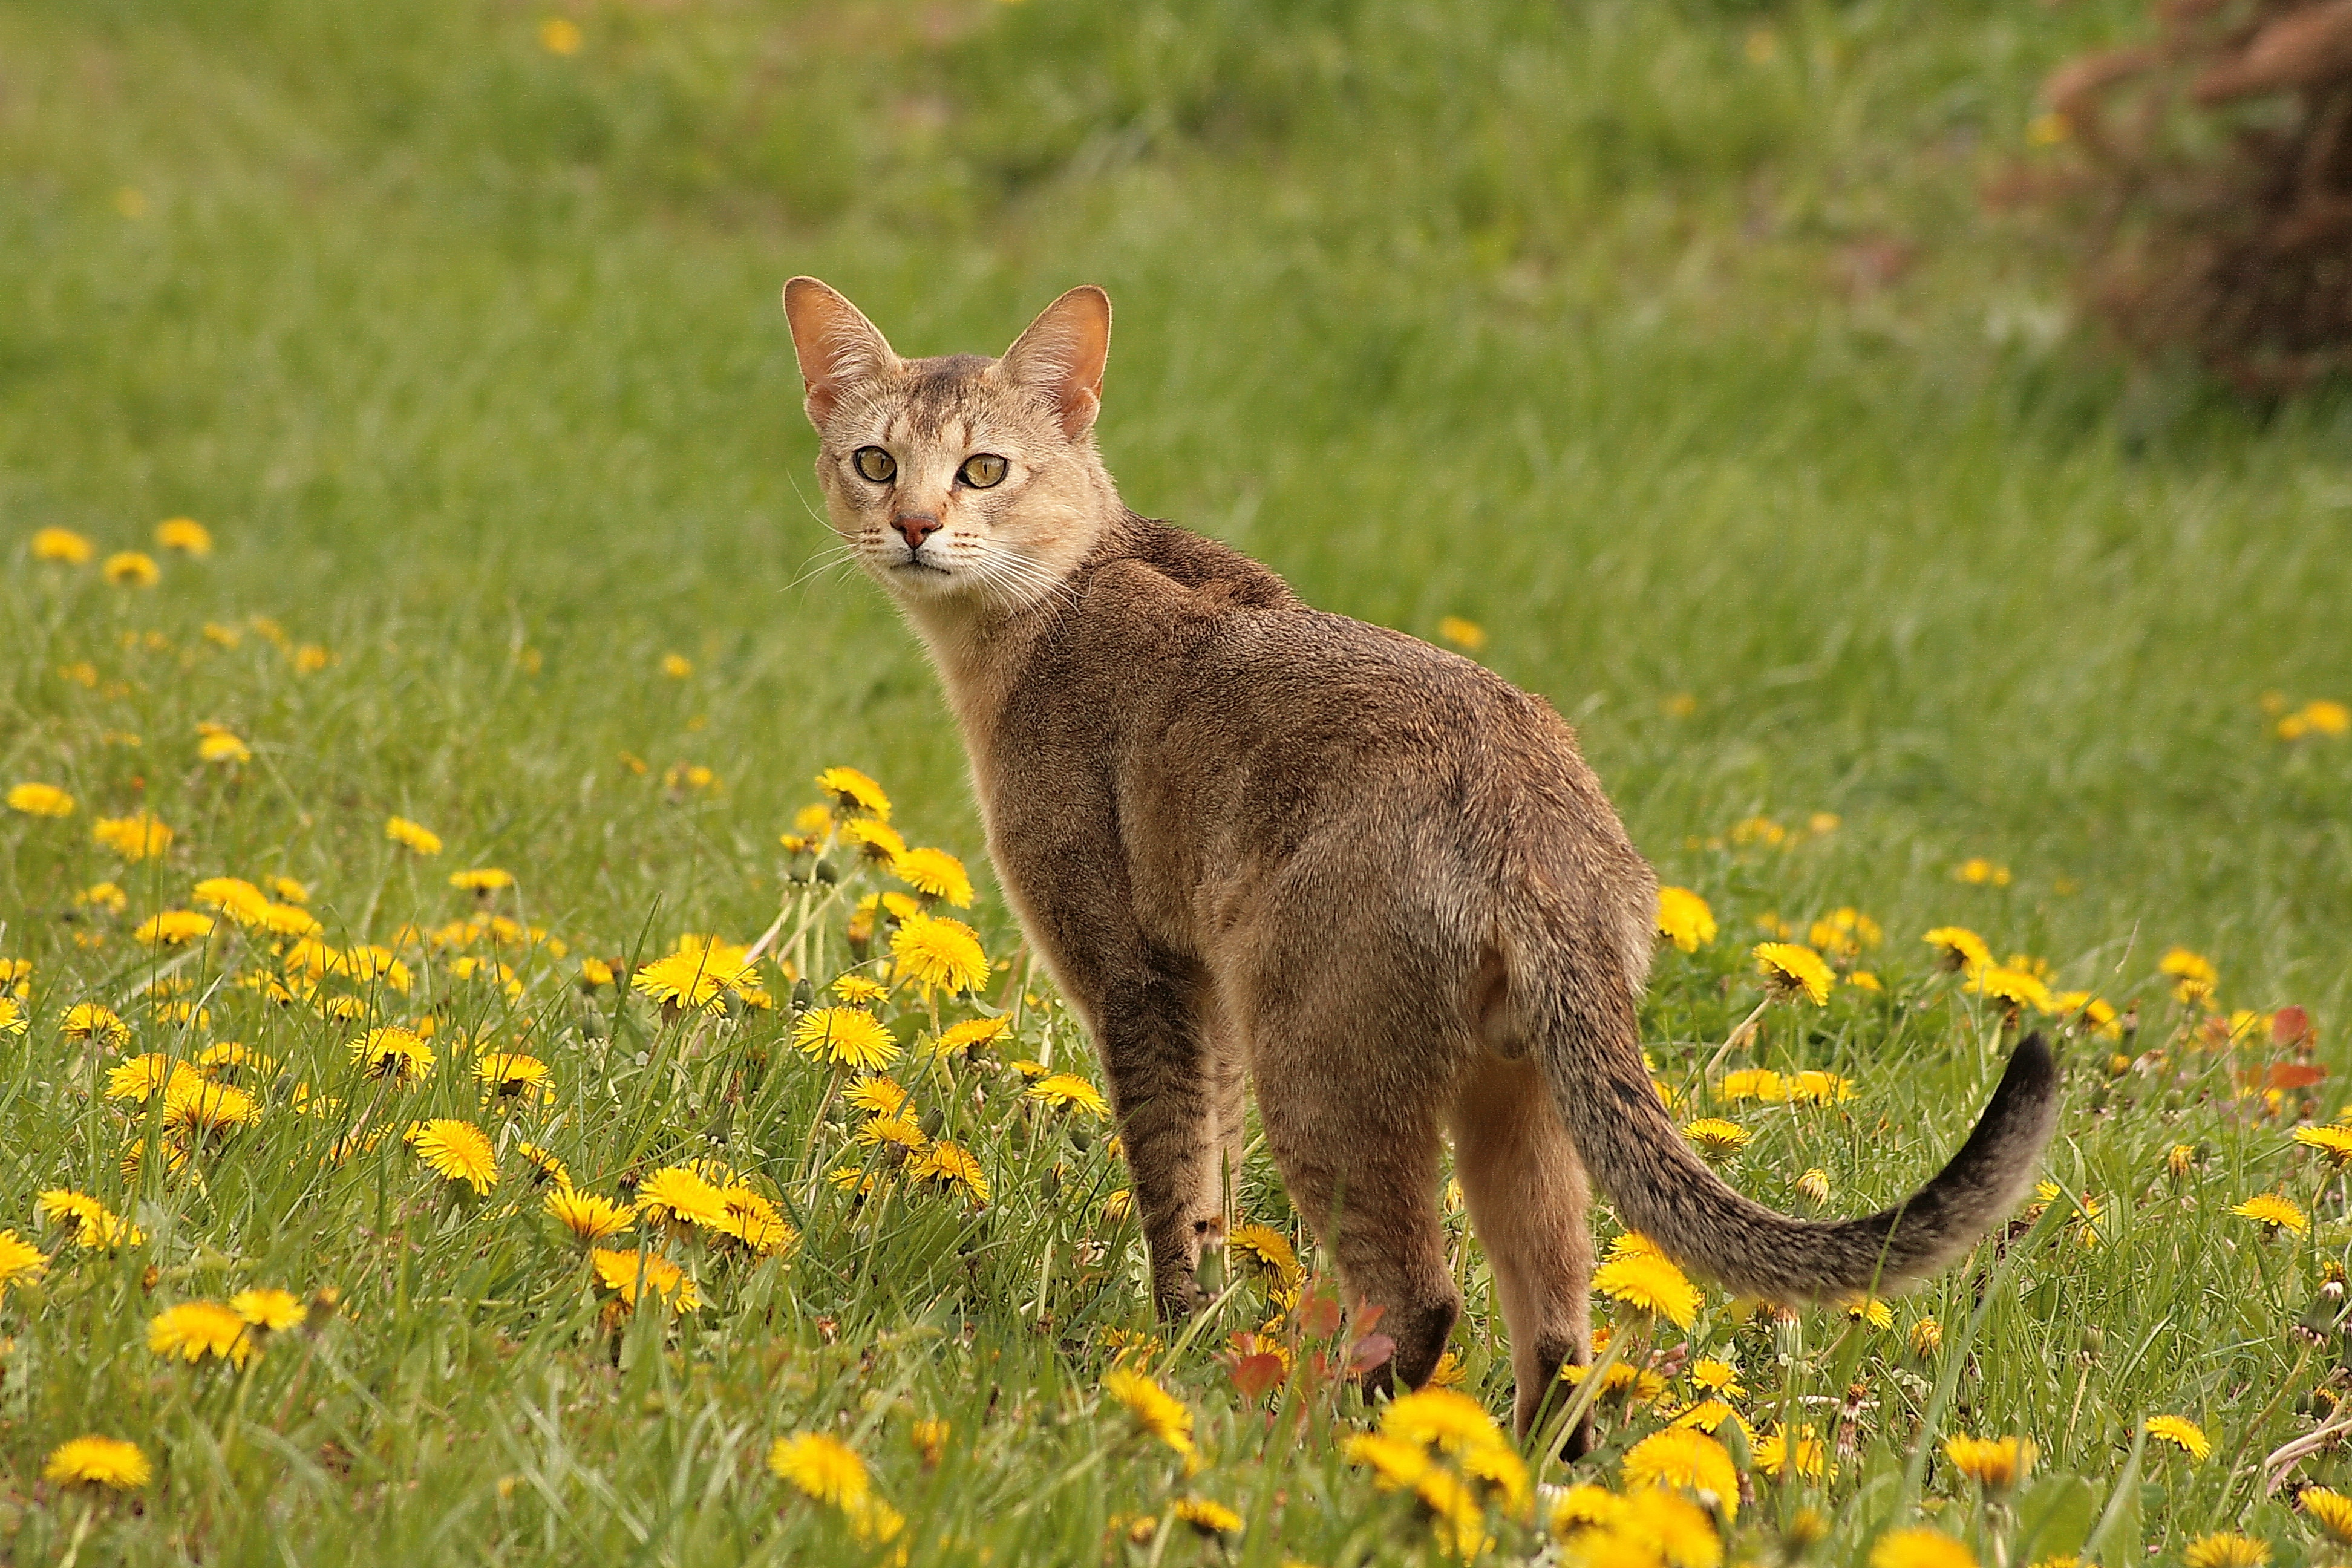 File:Chausie IMG 5419.jpg - Wikimedia Commons